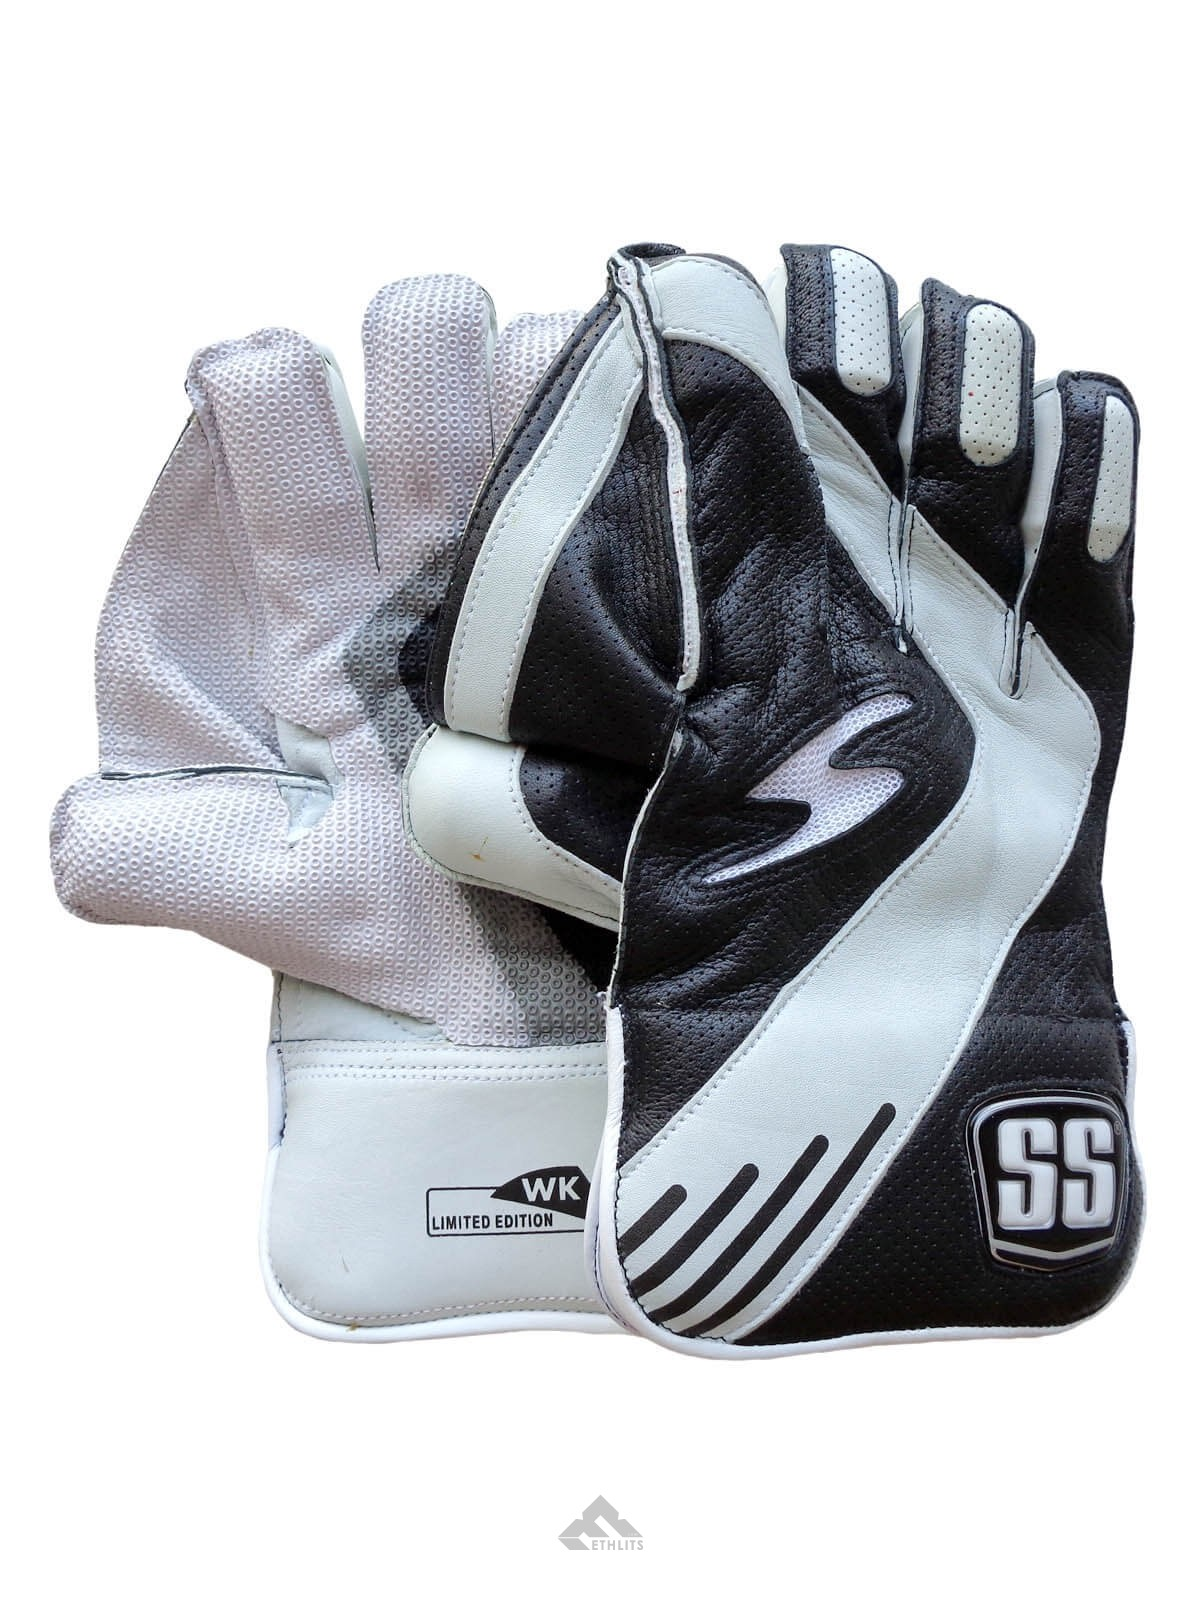 SS Mens Professional Wicket Keeping Gloves